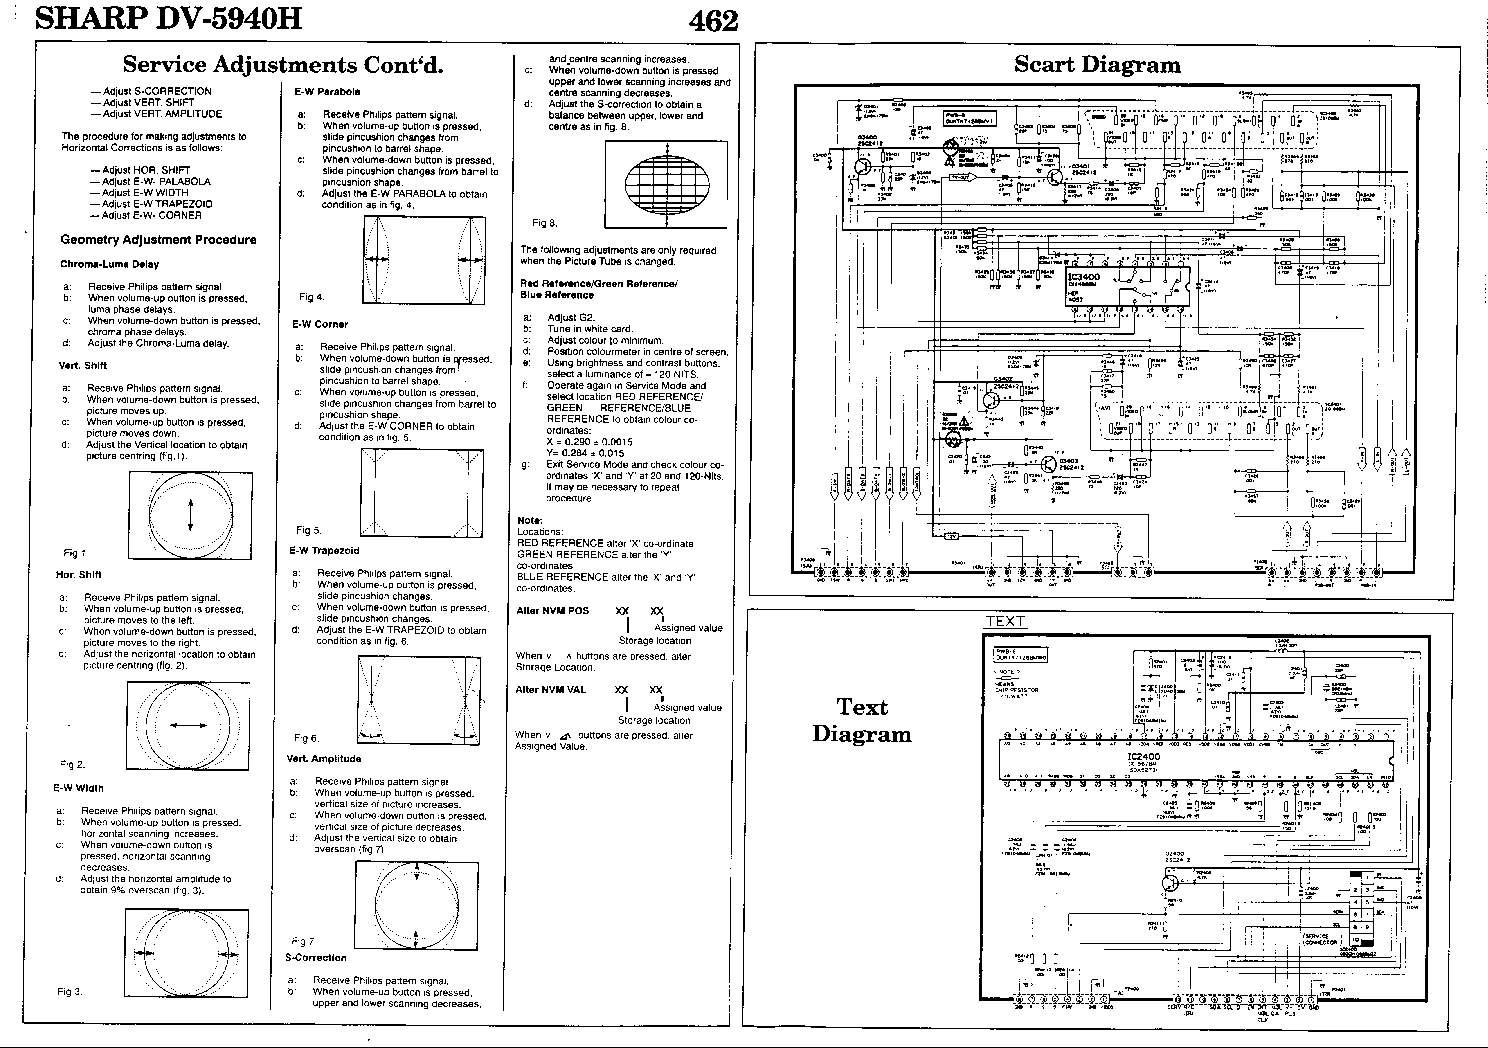 SHARP SHARP DV-5940H Service Manual download, schematics